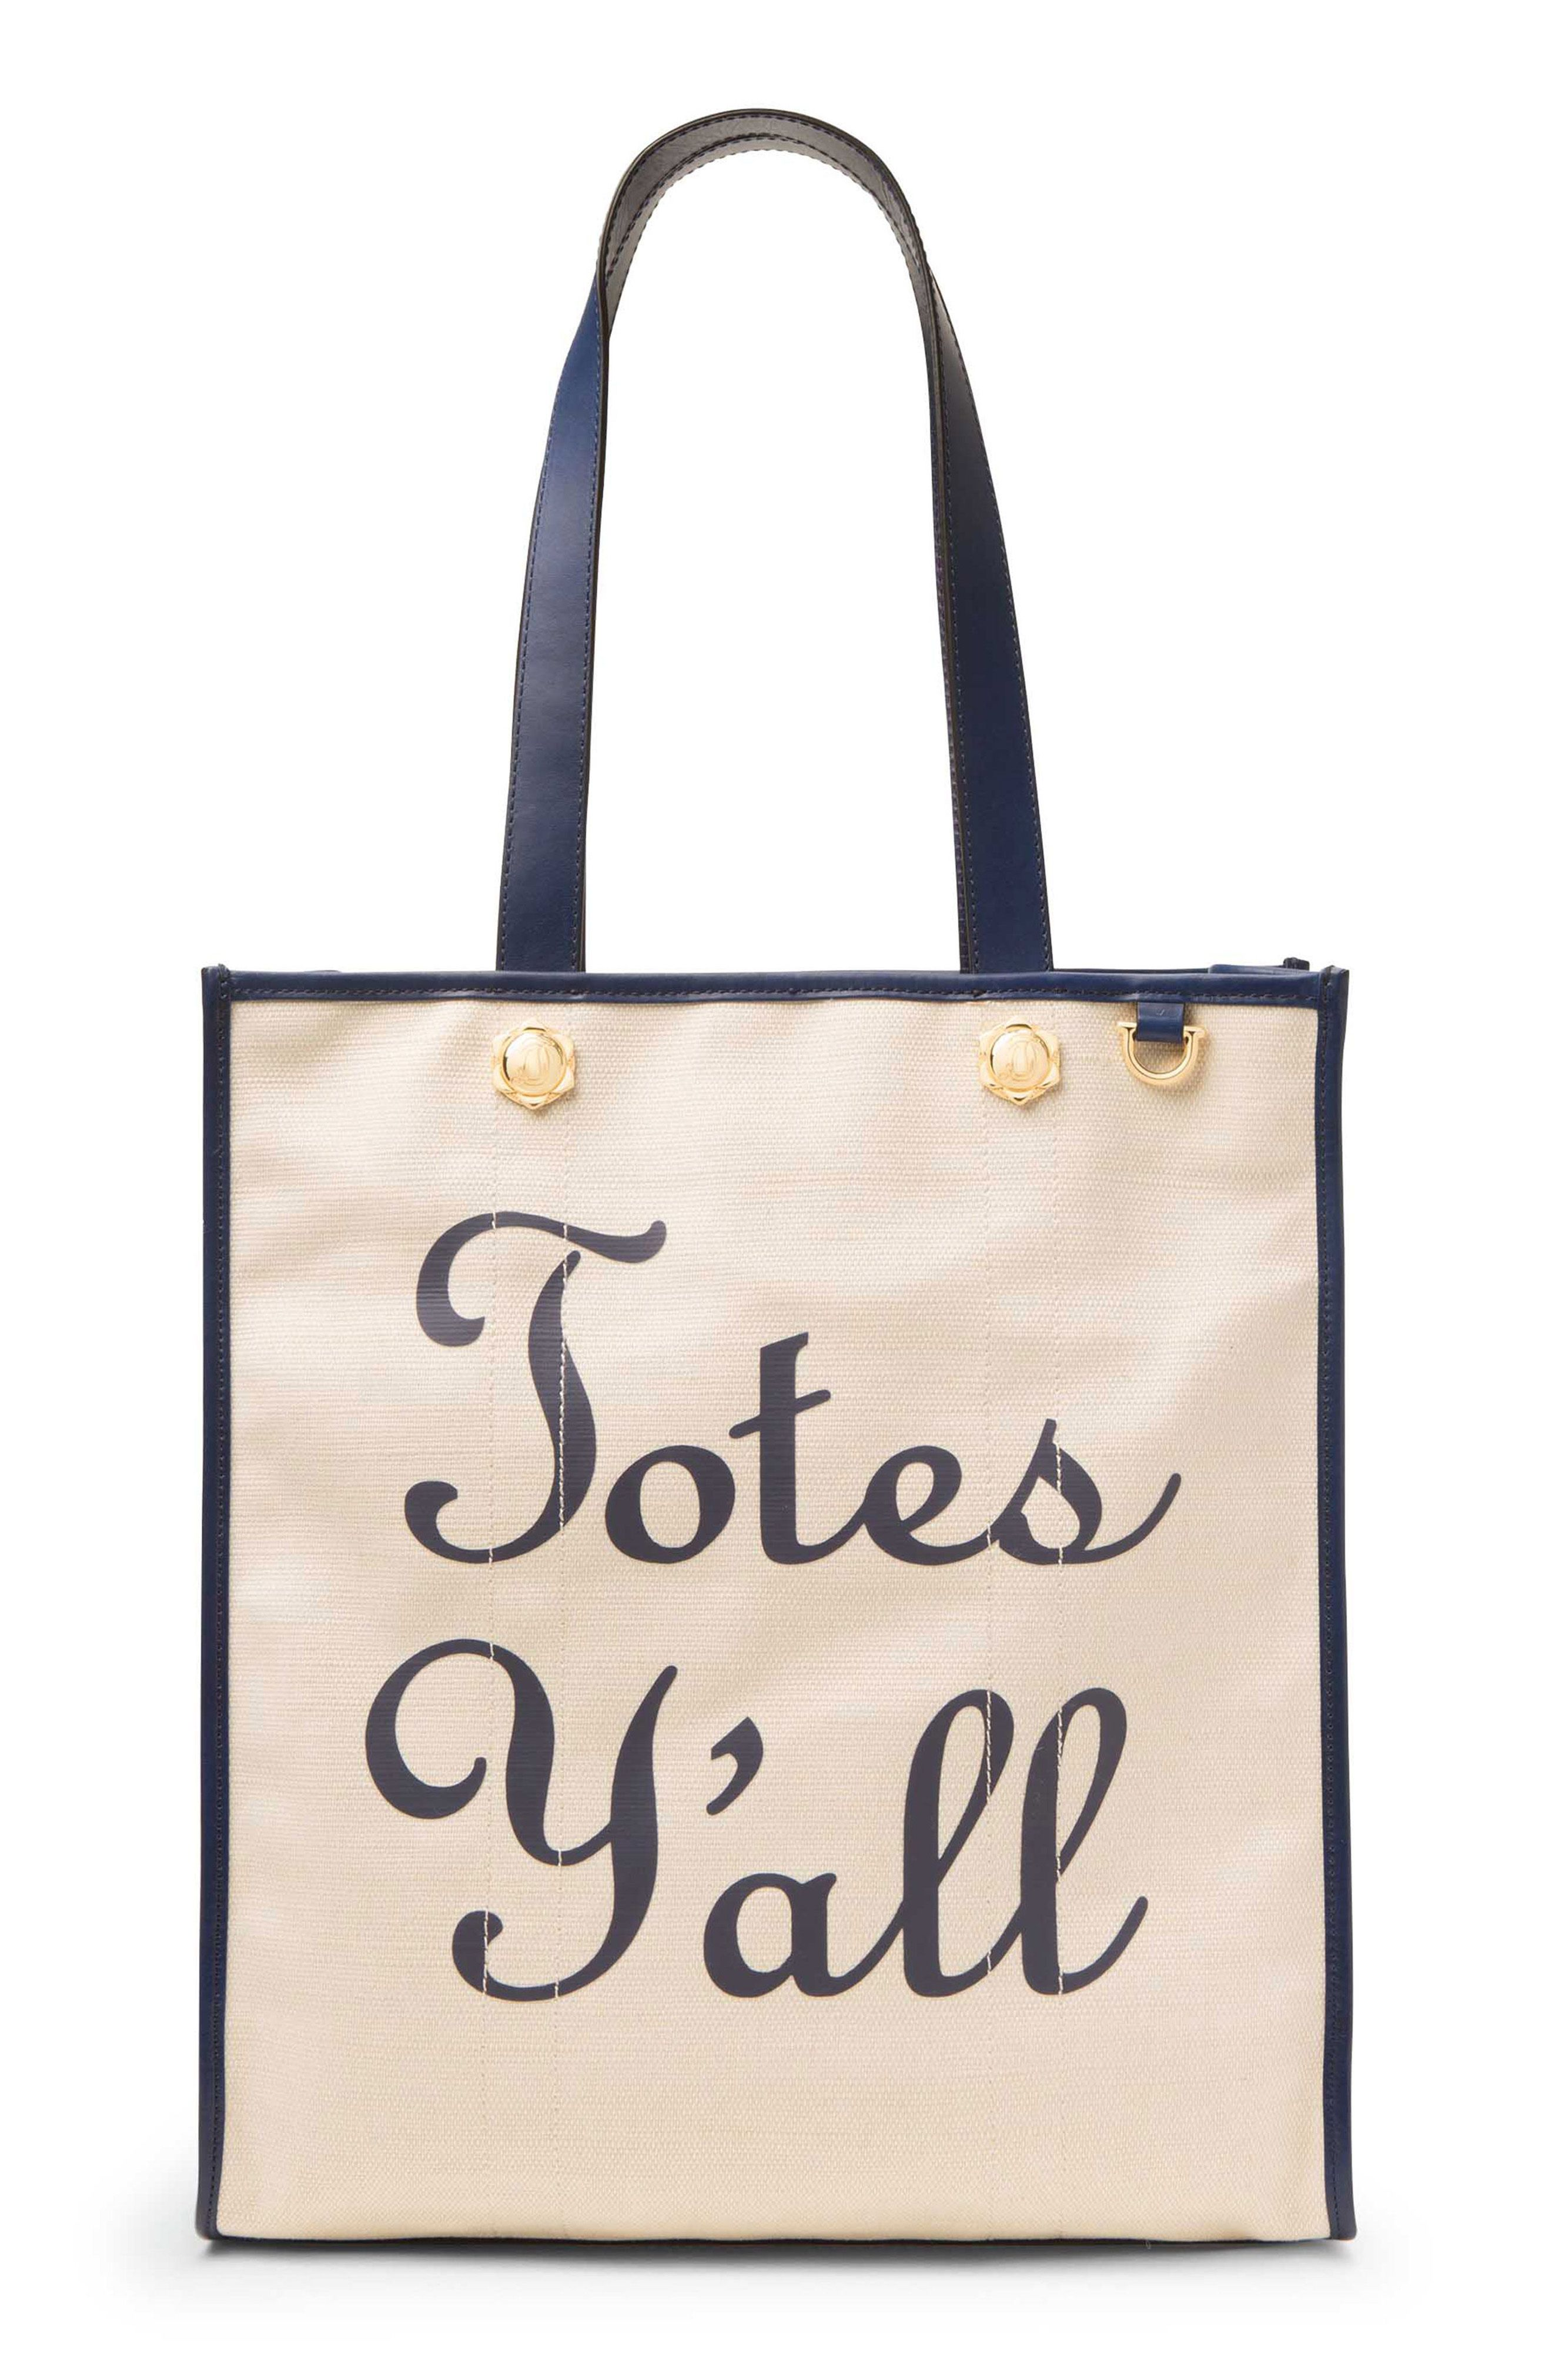 Totes Y'all Canvas Tote from Draper James